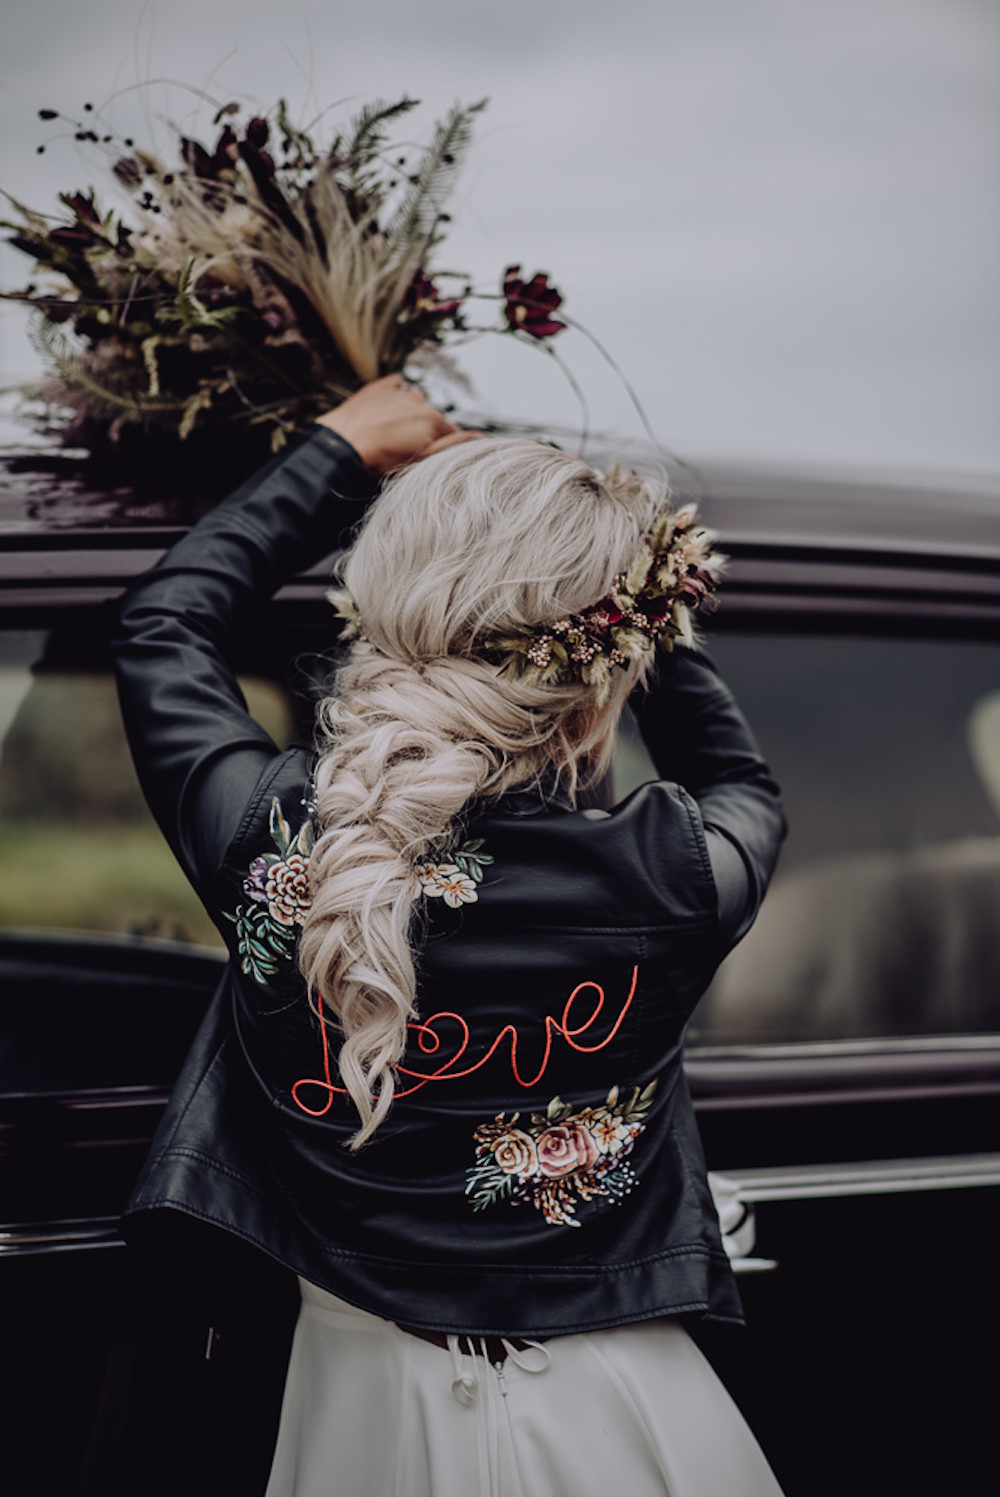 Leather Jacket Personalised Painted Bride Bridal Hair Style Up Do Plait Braid Flower Crown Unconventional Wedding Ideas Pierra G Photography